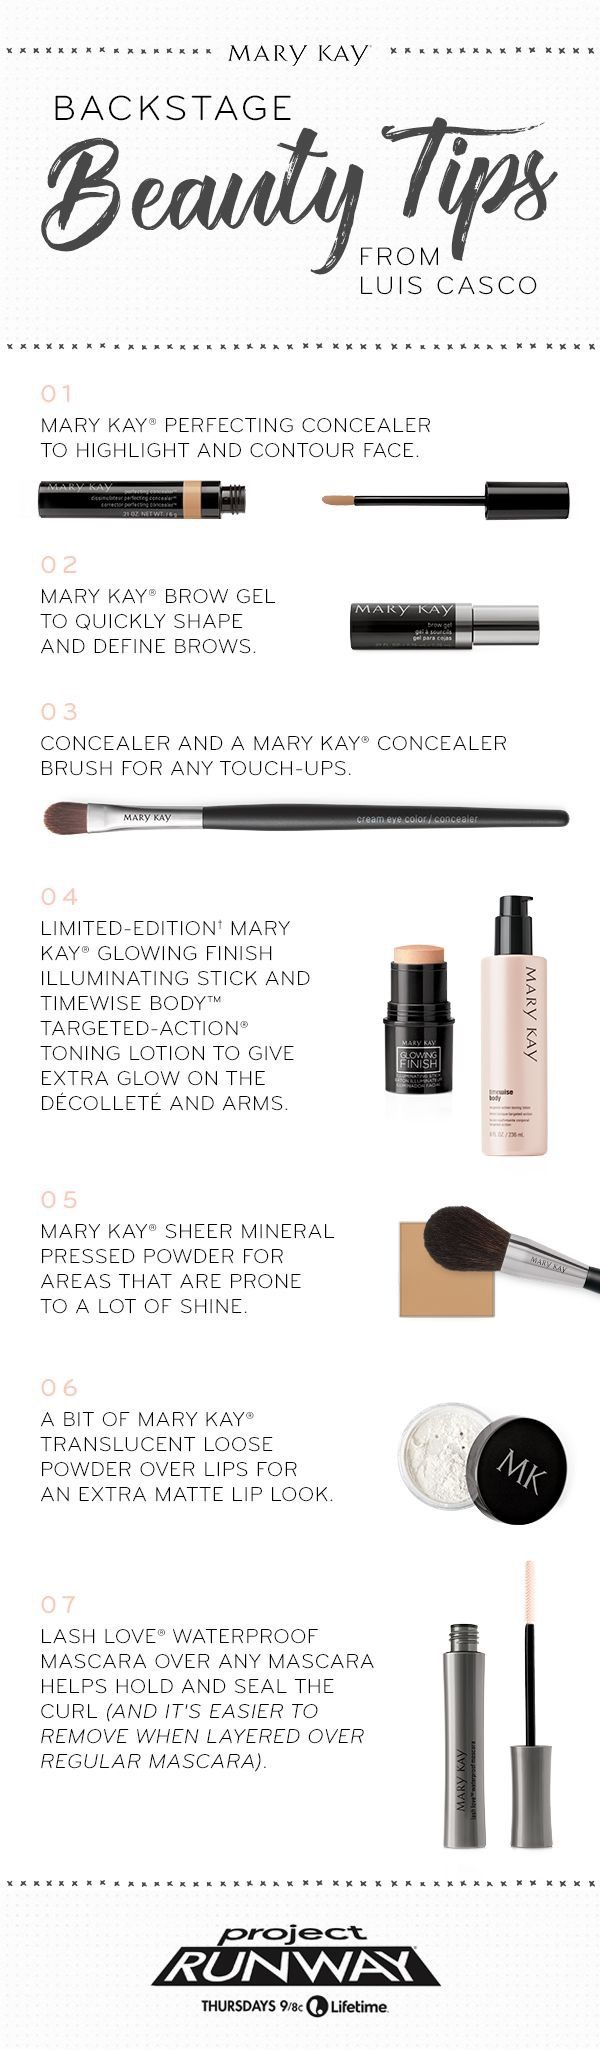 www.marykay.com/csiats or contact me csiats@marykay.com or Facebook Christi Siats, Independent Mary Kay Consultant.